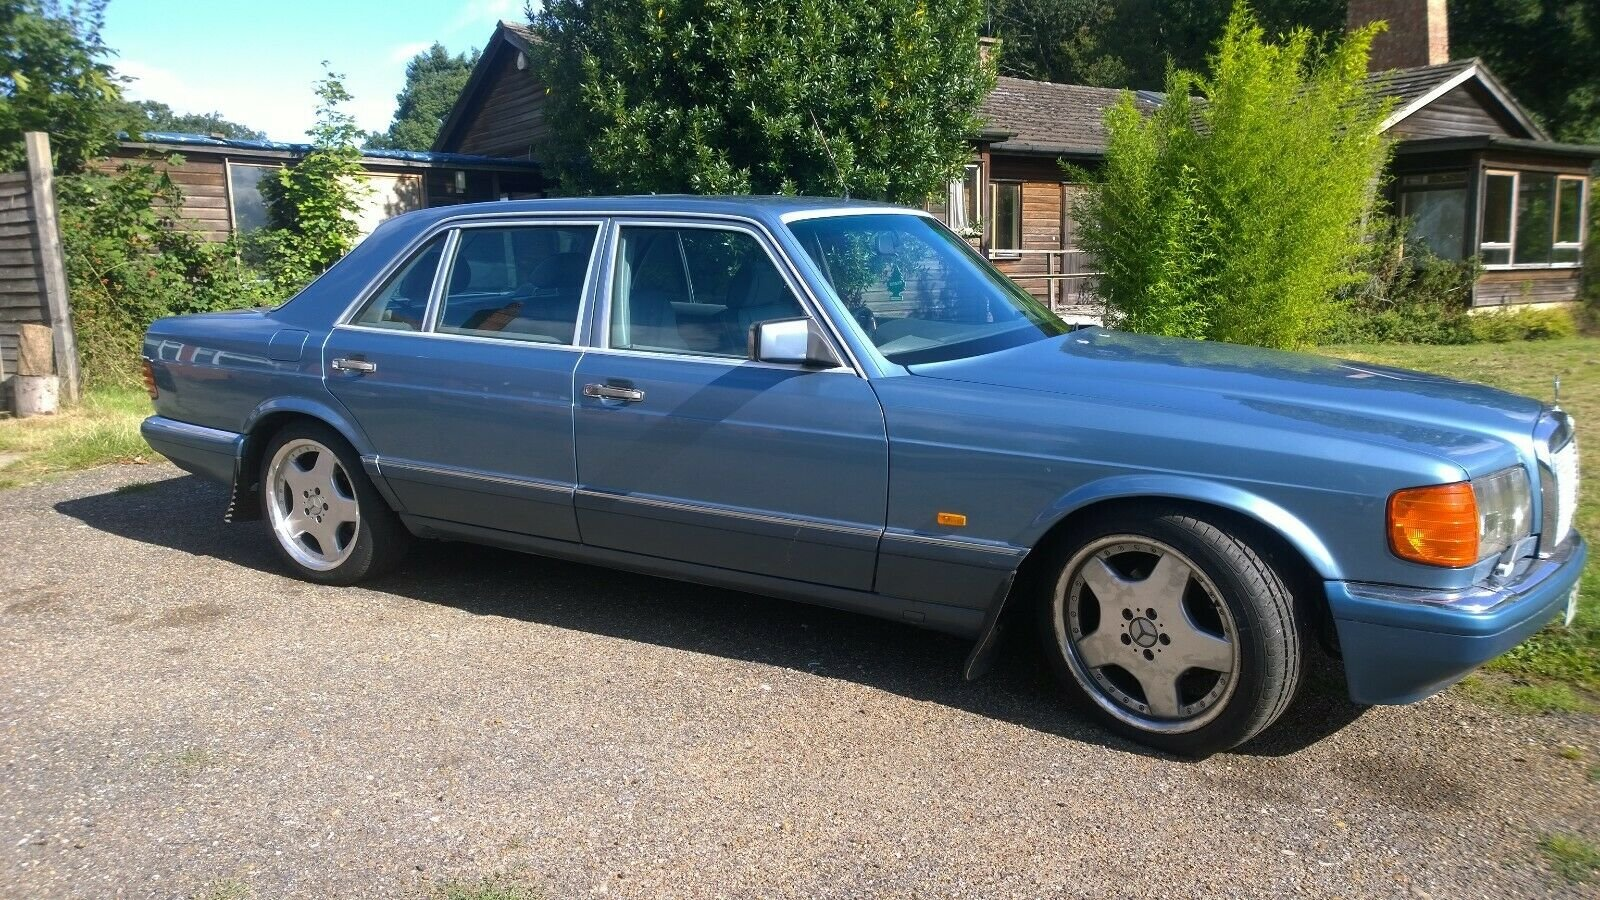 1988 Mercedes 560 SEL, V8, W126, 2+2, Cheapest in UK For Sale (picture 2 of 6)